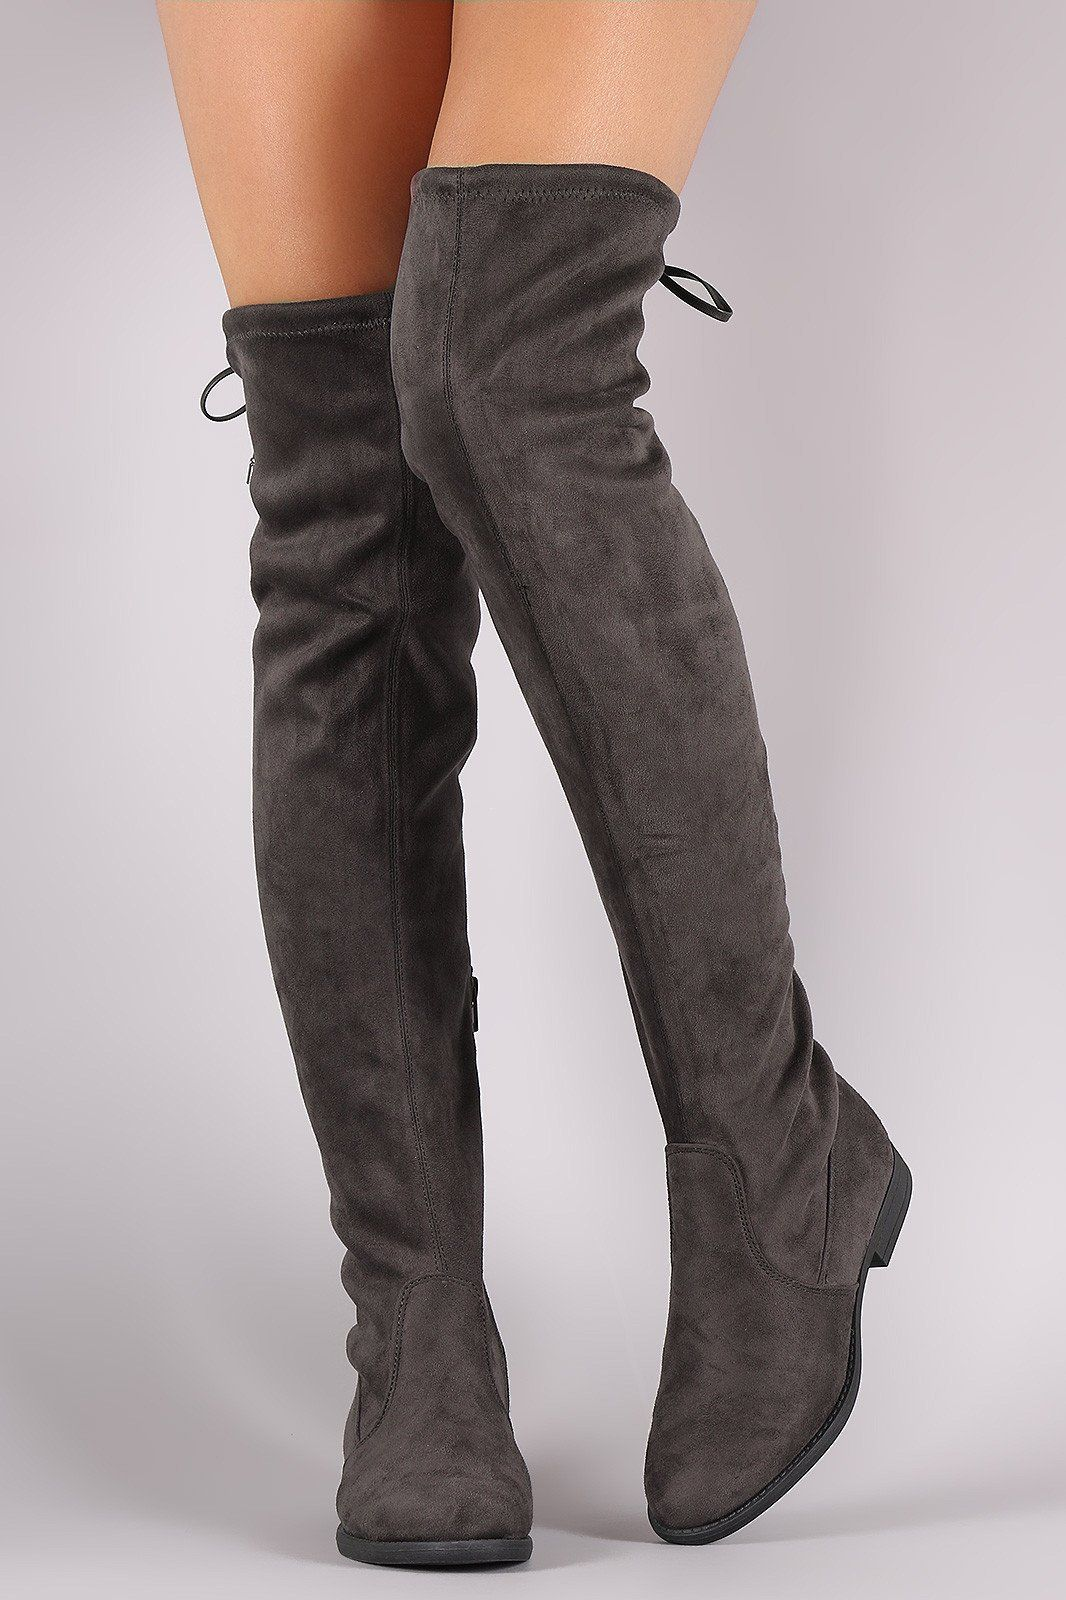 1951bffb391 Liliana Suede Drawstring Tie Riding Over-The-Knee Boots | being a ...